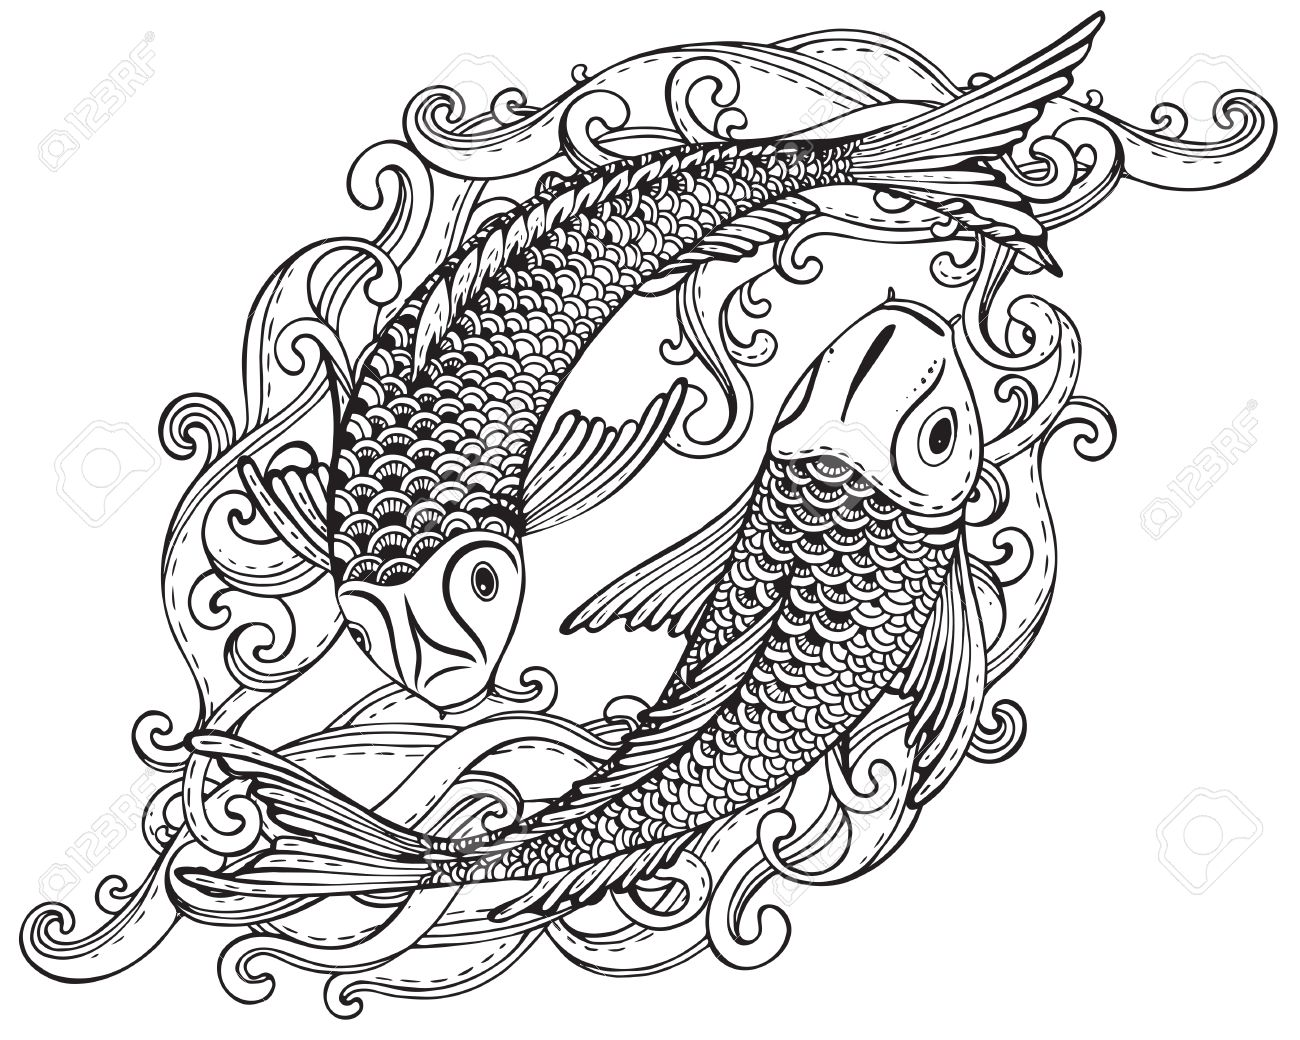 Hand Drawn Vector Illustration Of Two Koi Fishes Japanese Carp